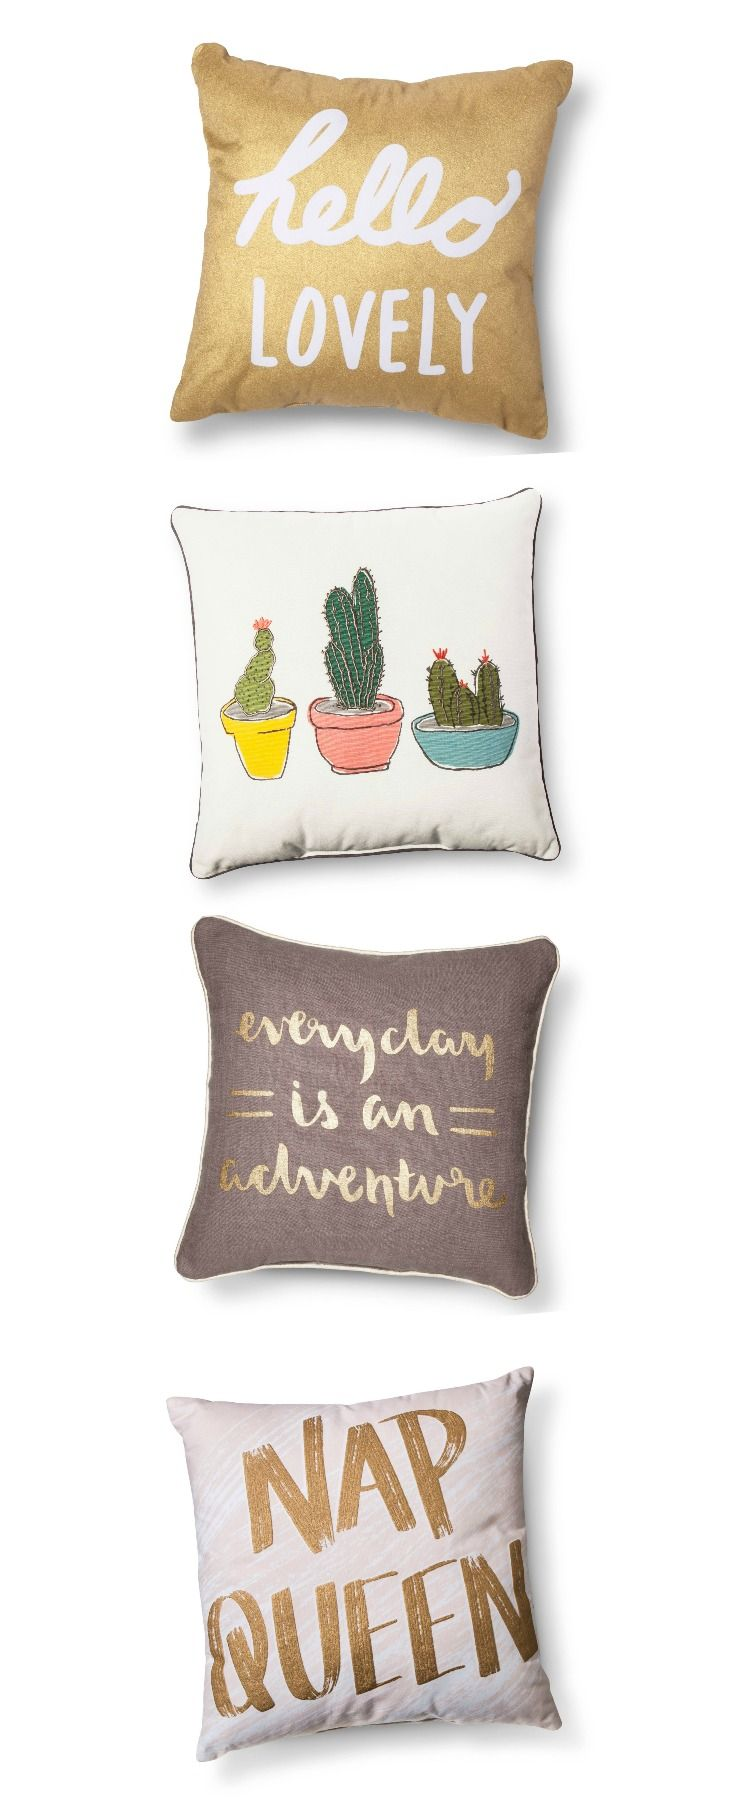 Cute Decorative Throw Pillows Awesome Gold Pillows To Decorate A Dorm Room College Student Dorm Room Ideas Dorm R Pillows College Throw Pillow Dorm Themes